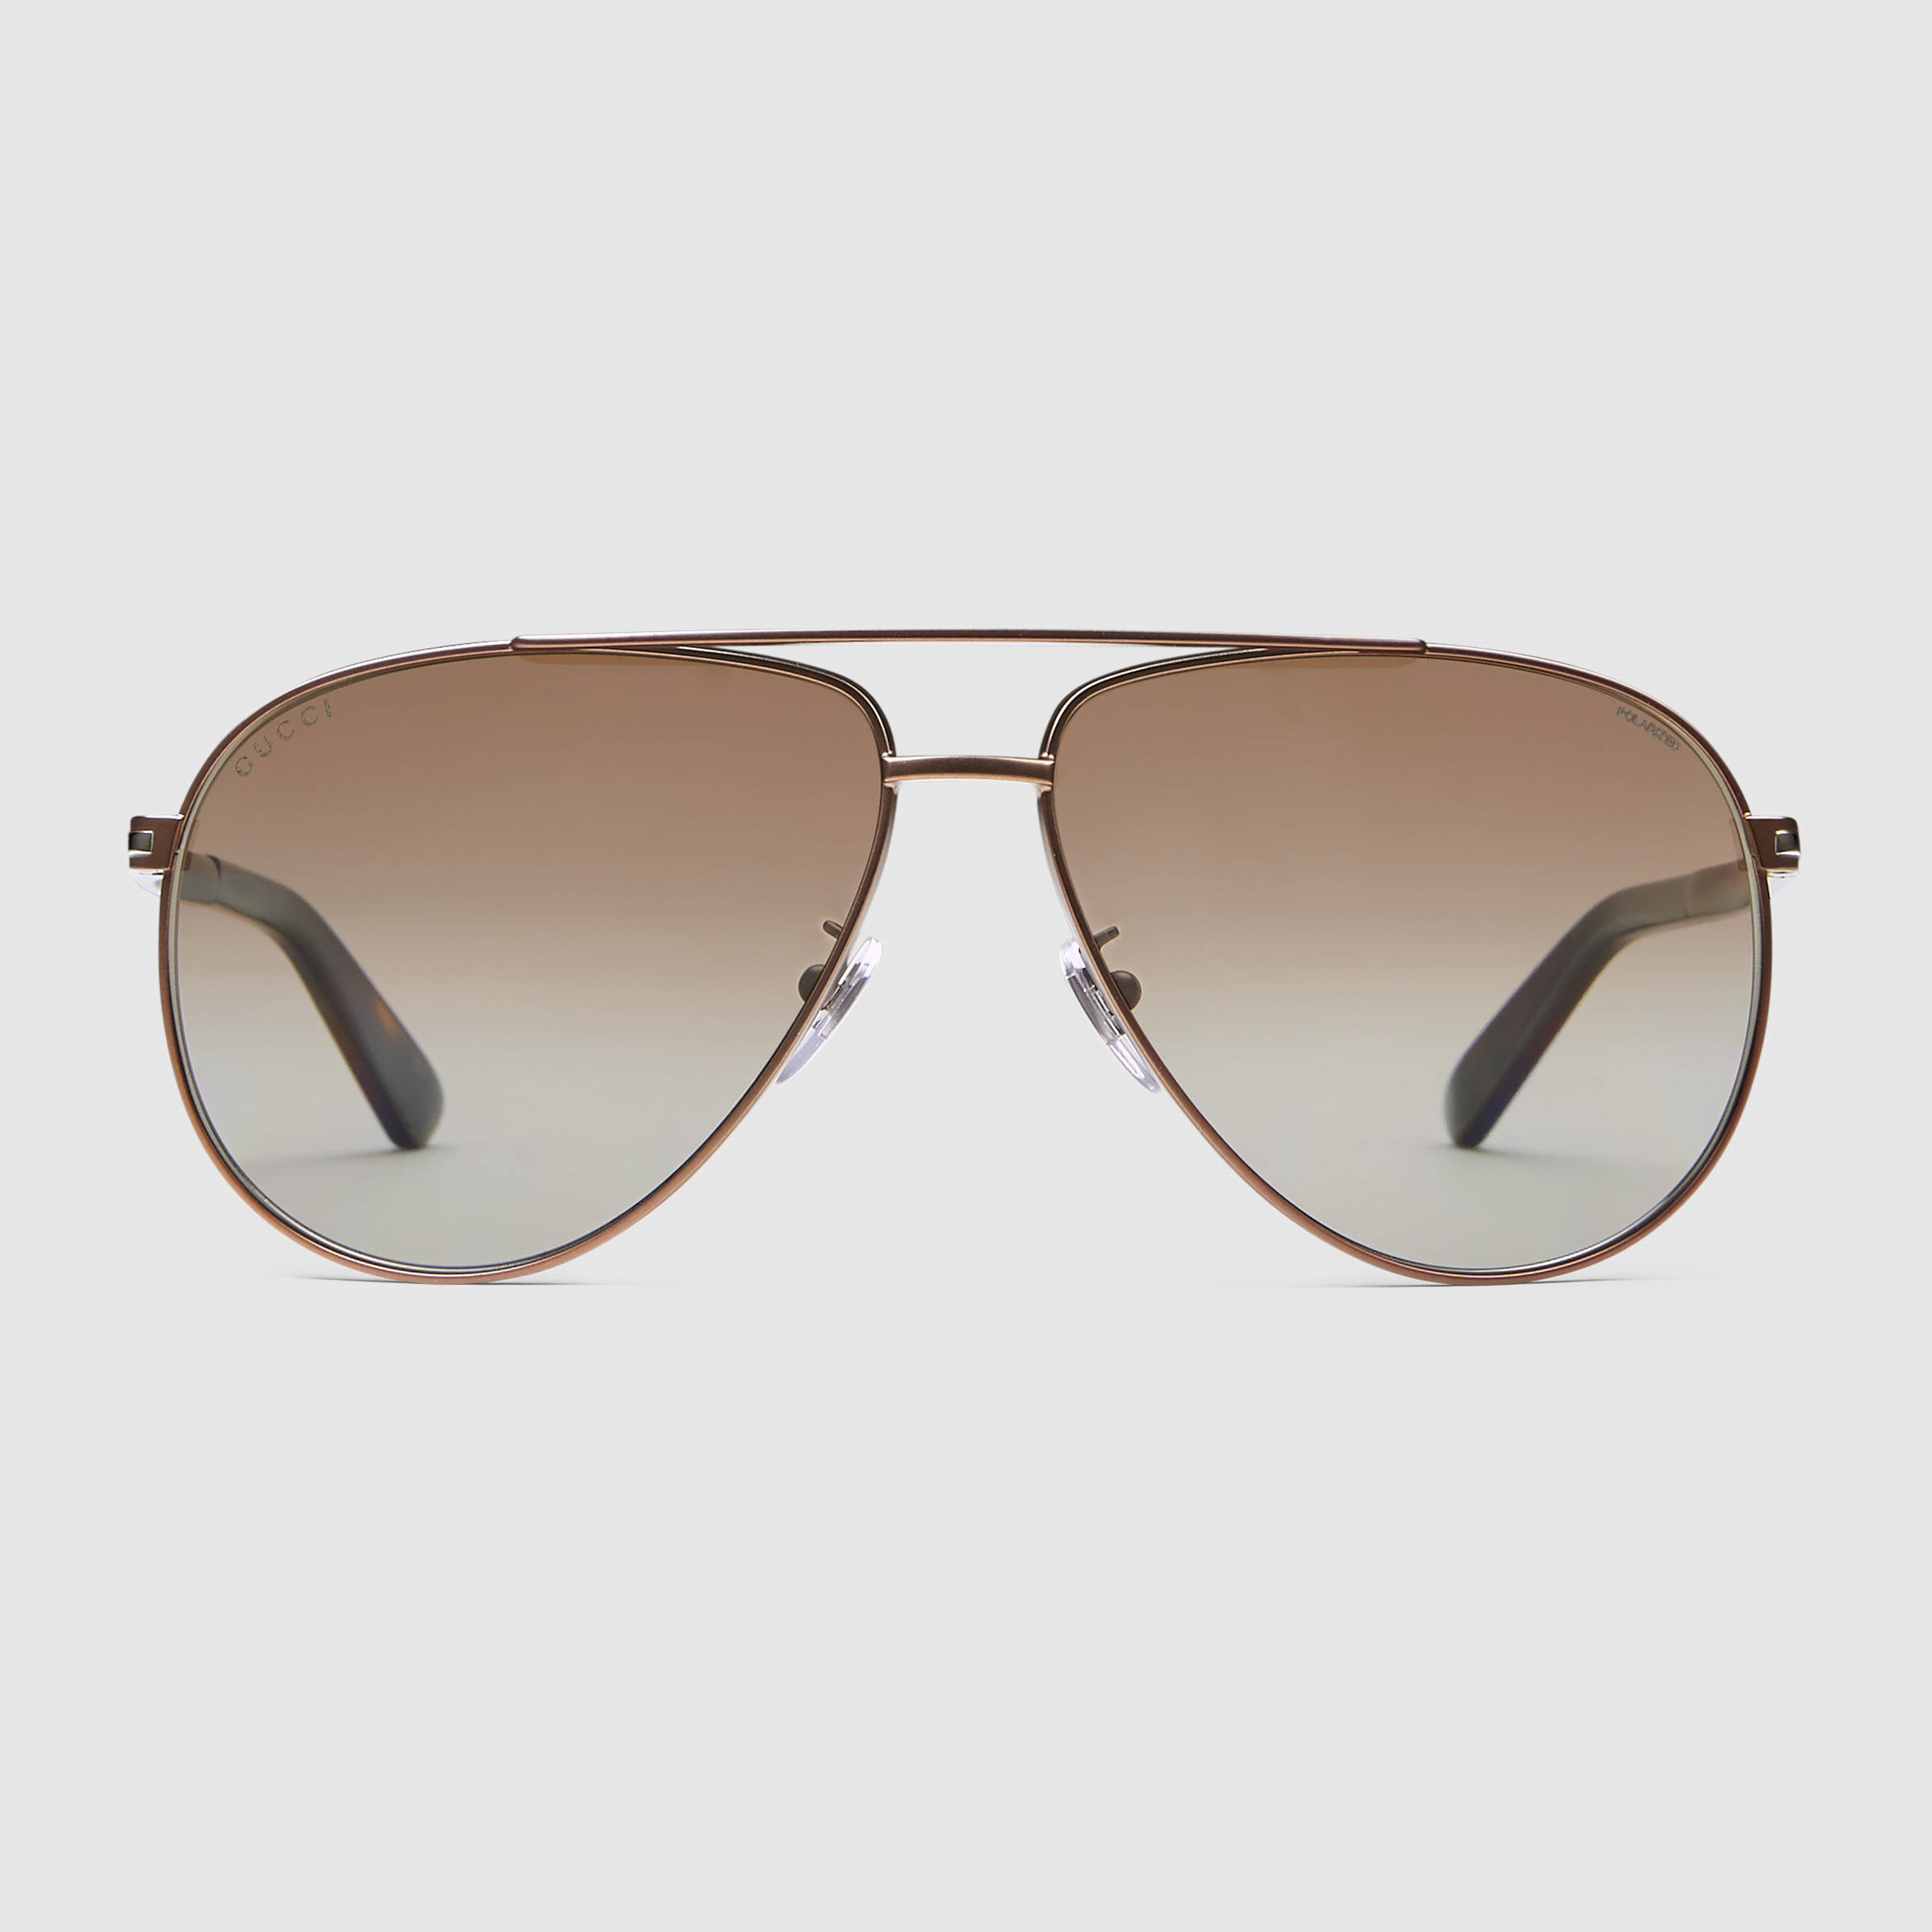 2618cc24067 Lyst - Gucci Aviator Metal Sunglasses With T-bar in Brown for Men